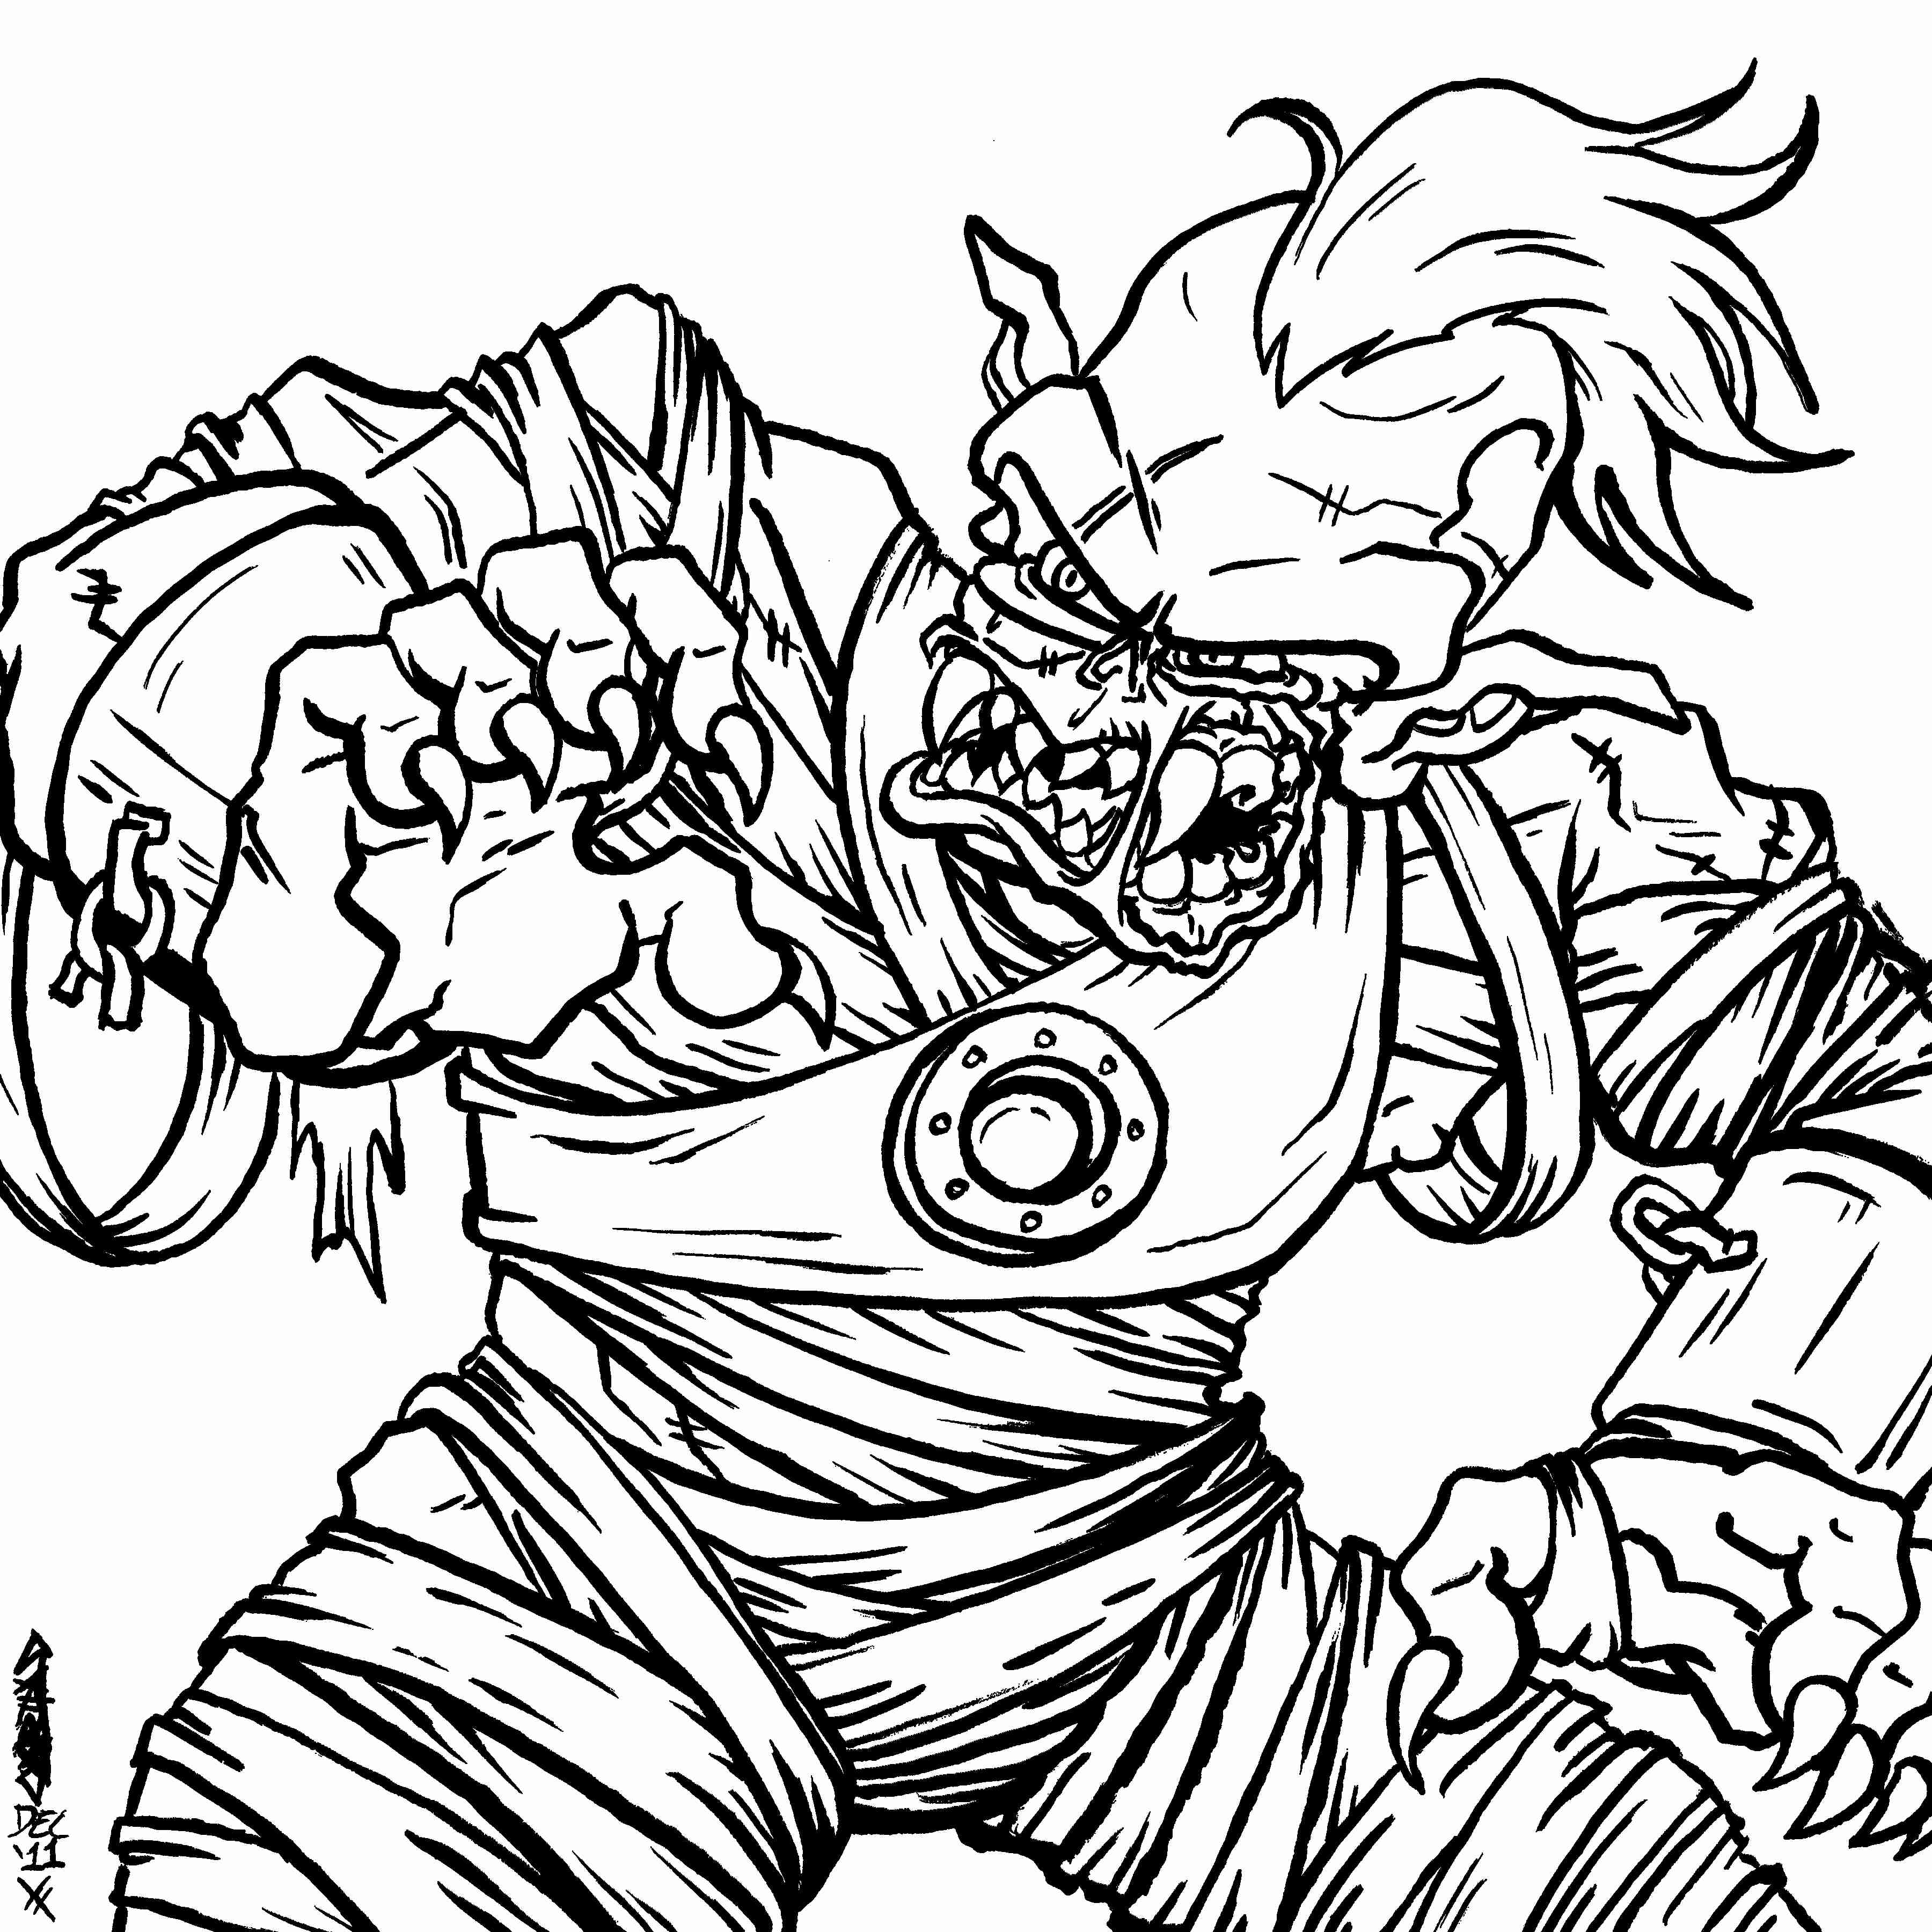 Zombie Coloring Pages For Kids At Getcolorings